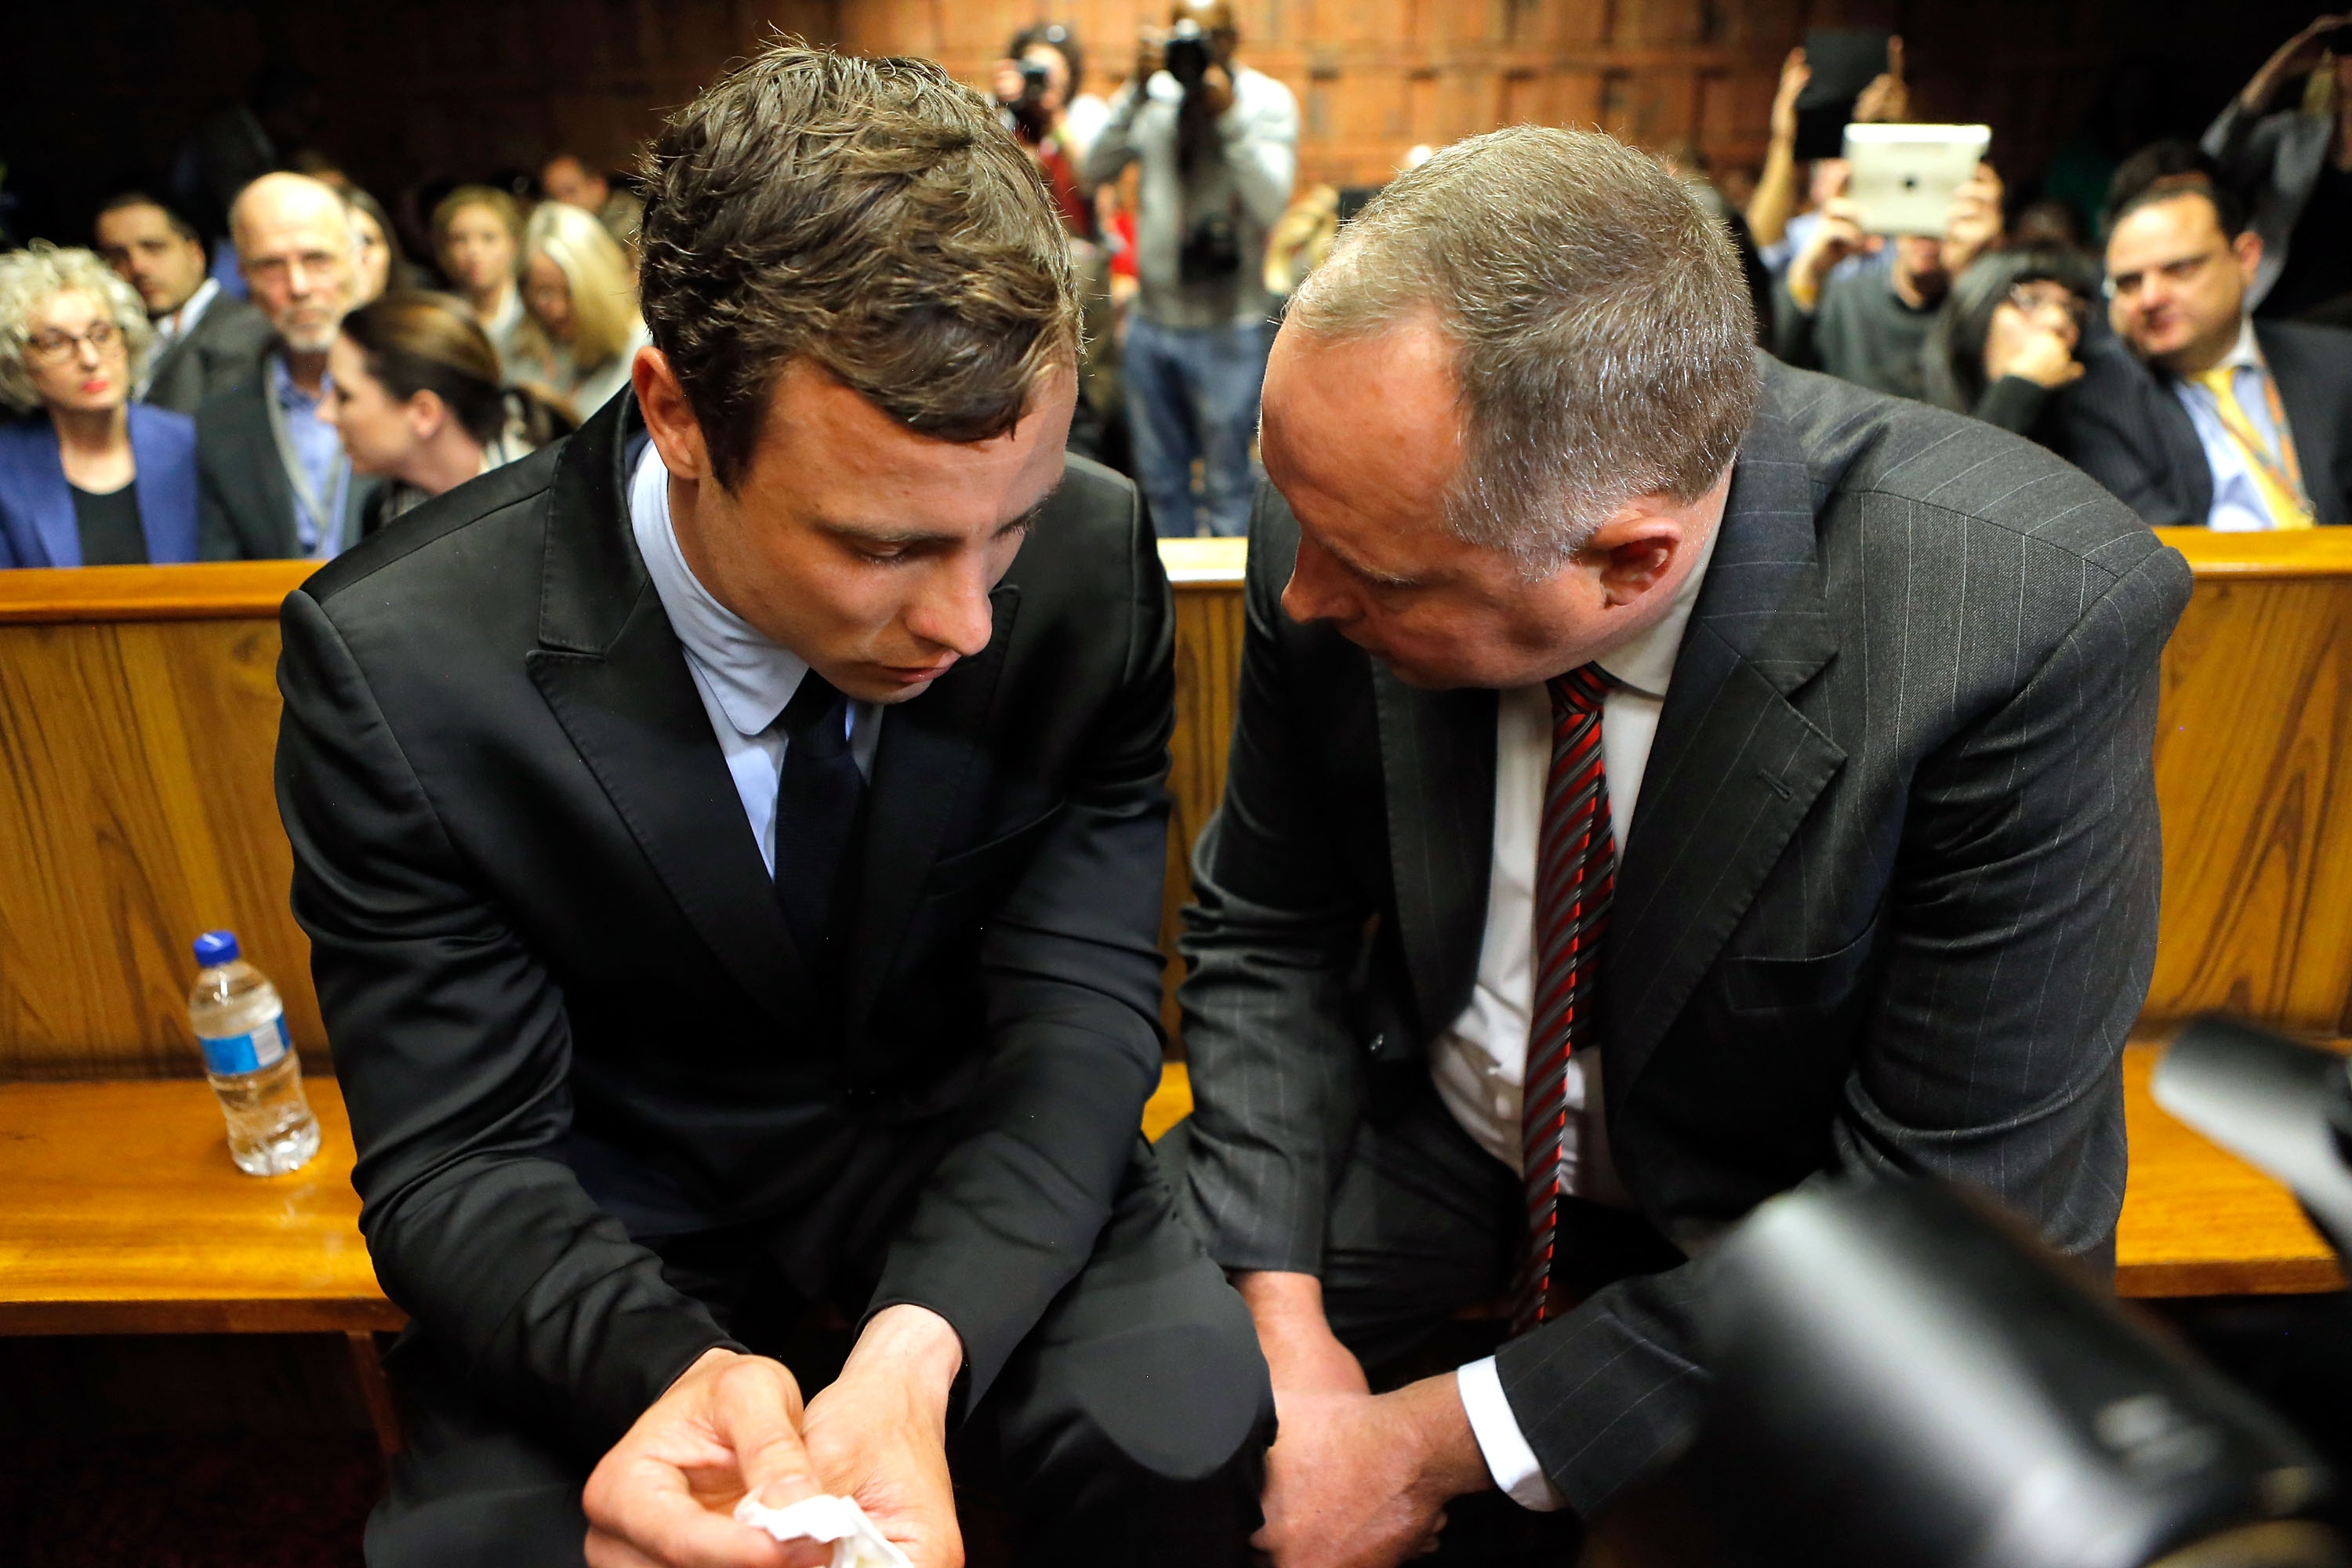 Oscar Pistorius (L) speaks with his lawyer Kenny Oldwage in court Monday. (Getty Images)